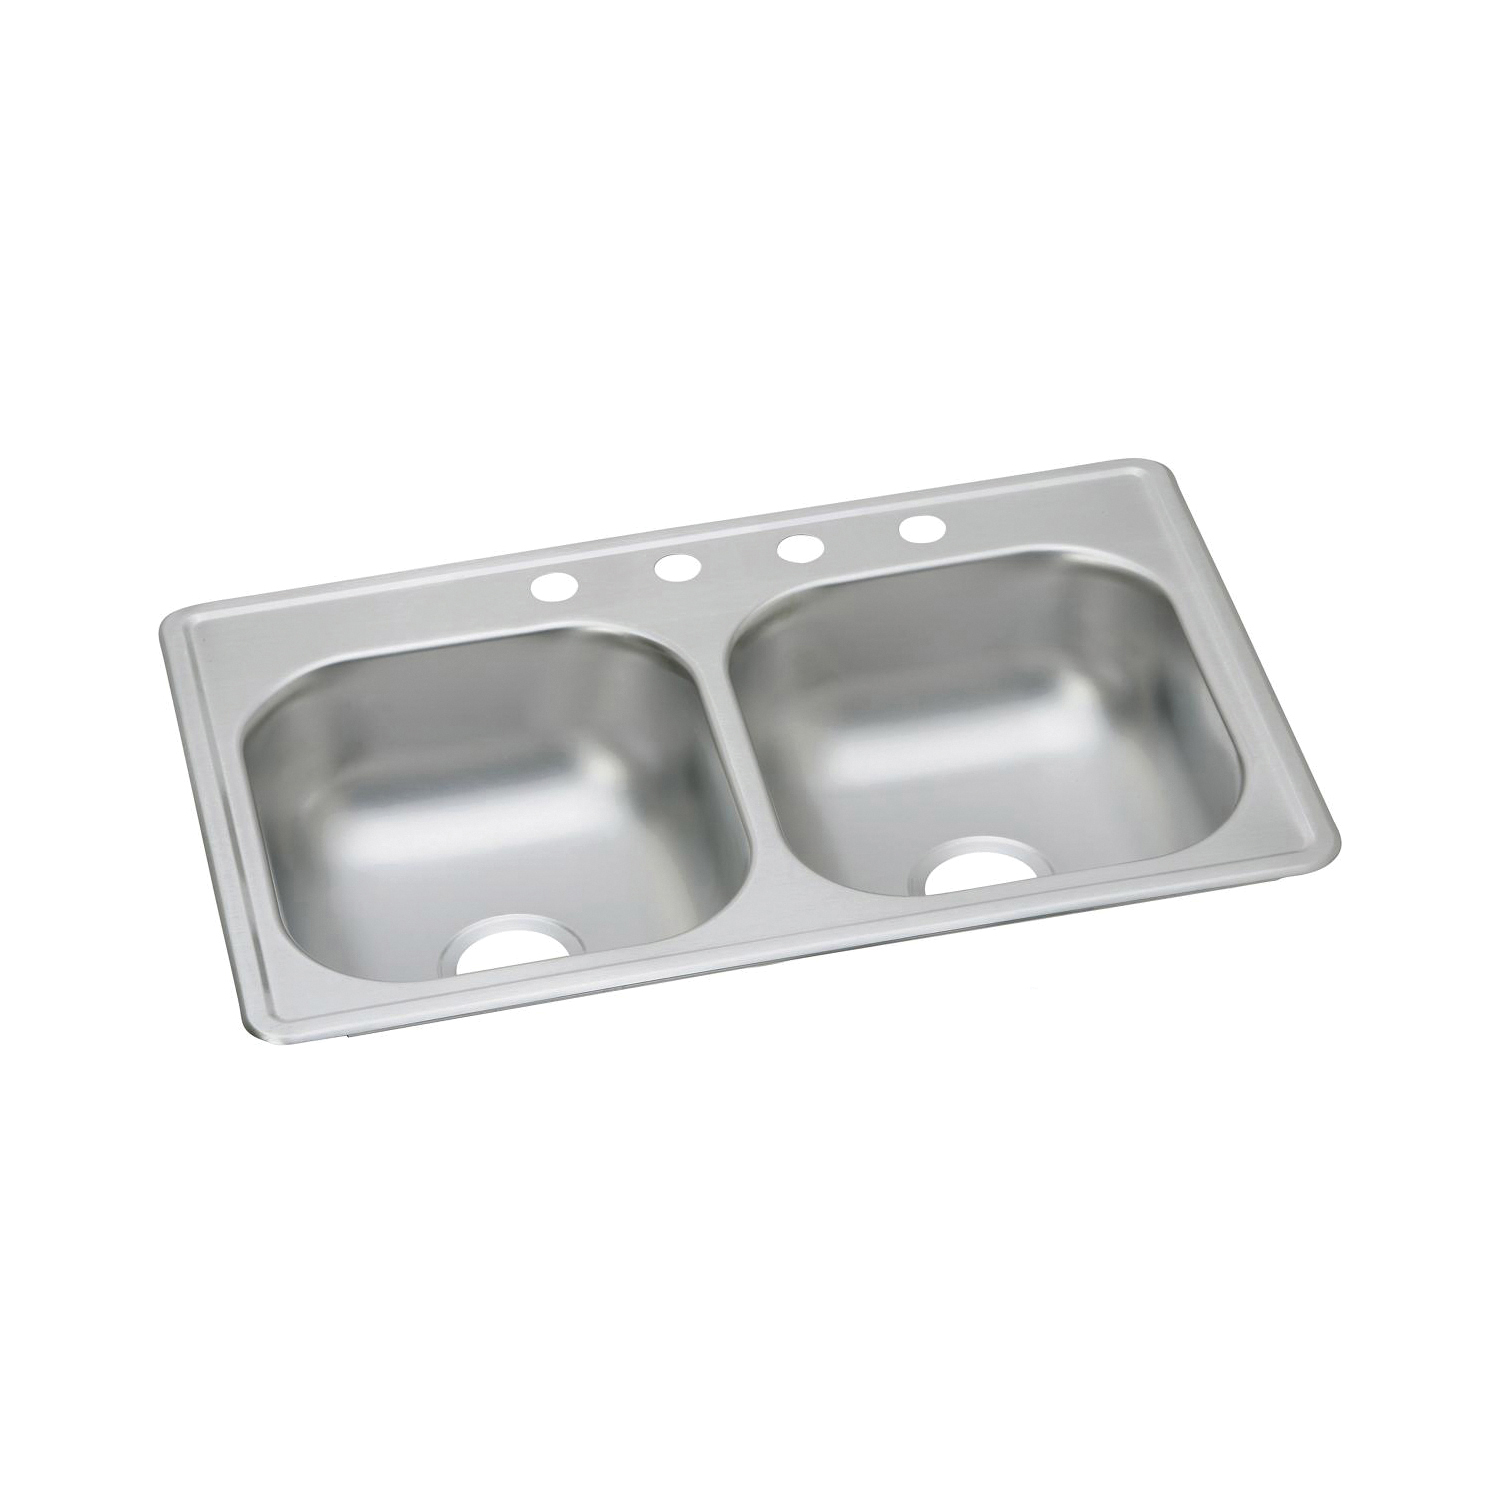 Elkay® D233193 Kitchen Sink, Dayton®, Rectangular, 14 in L x 14 in W x 6-5/16 in D Left Bowl, 14 in L x 14 in W x 6-5/16 in D Right Bowl, 3 Faucet Holes, 33 in L x 19 in W x 6-7/16 in H, Top Mount, Stainless Steel, Satin